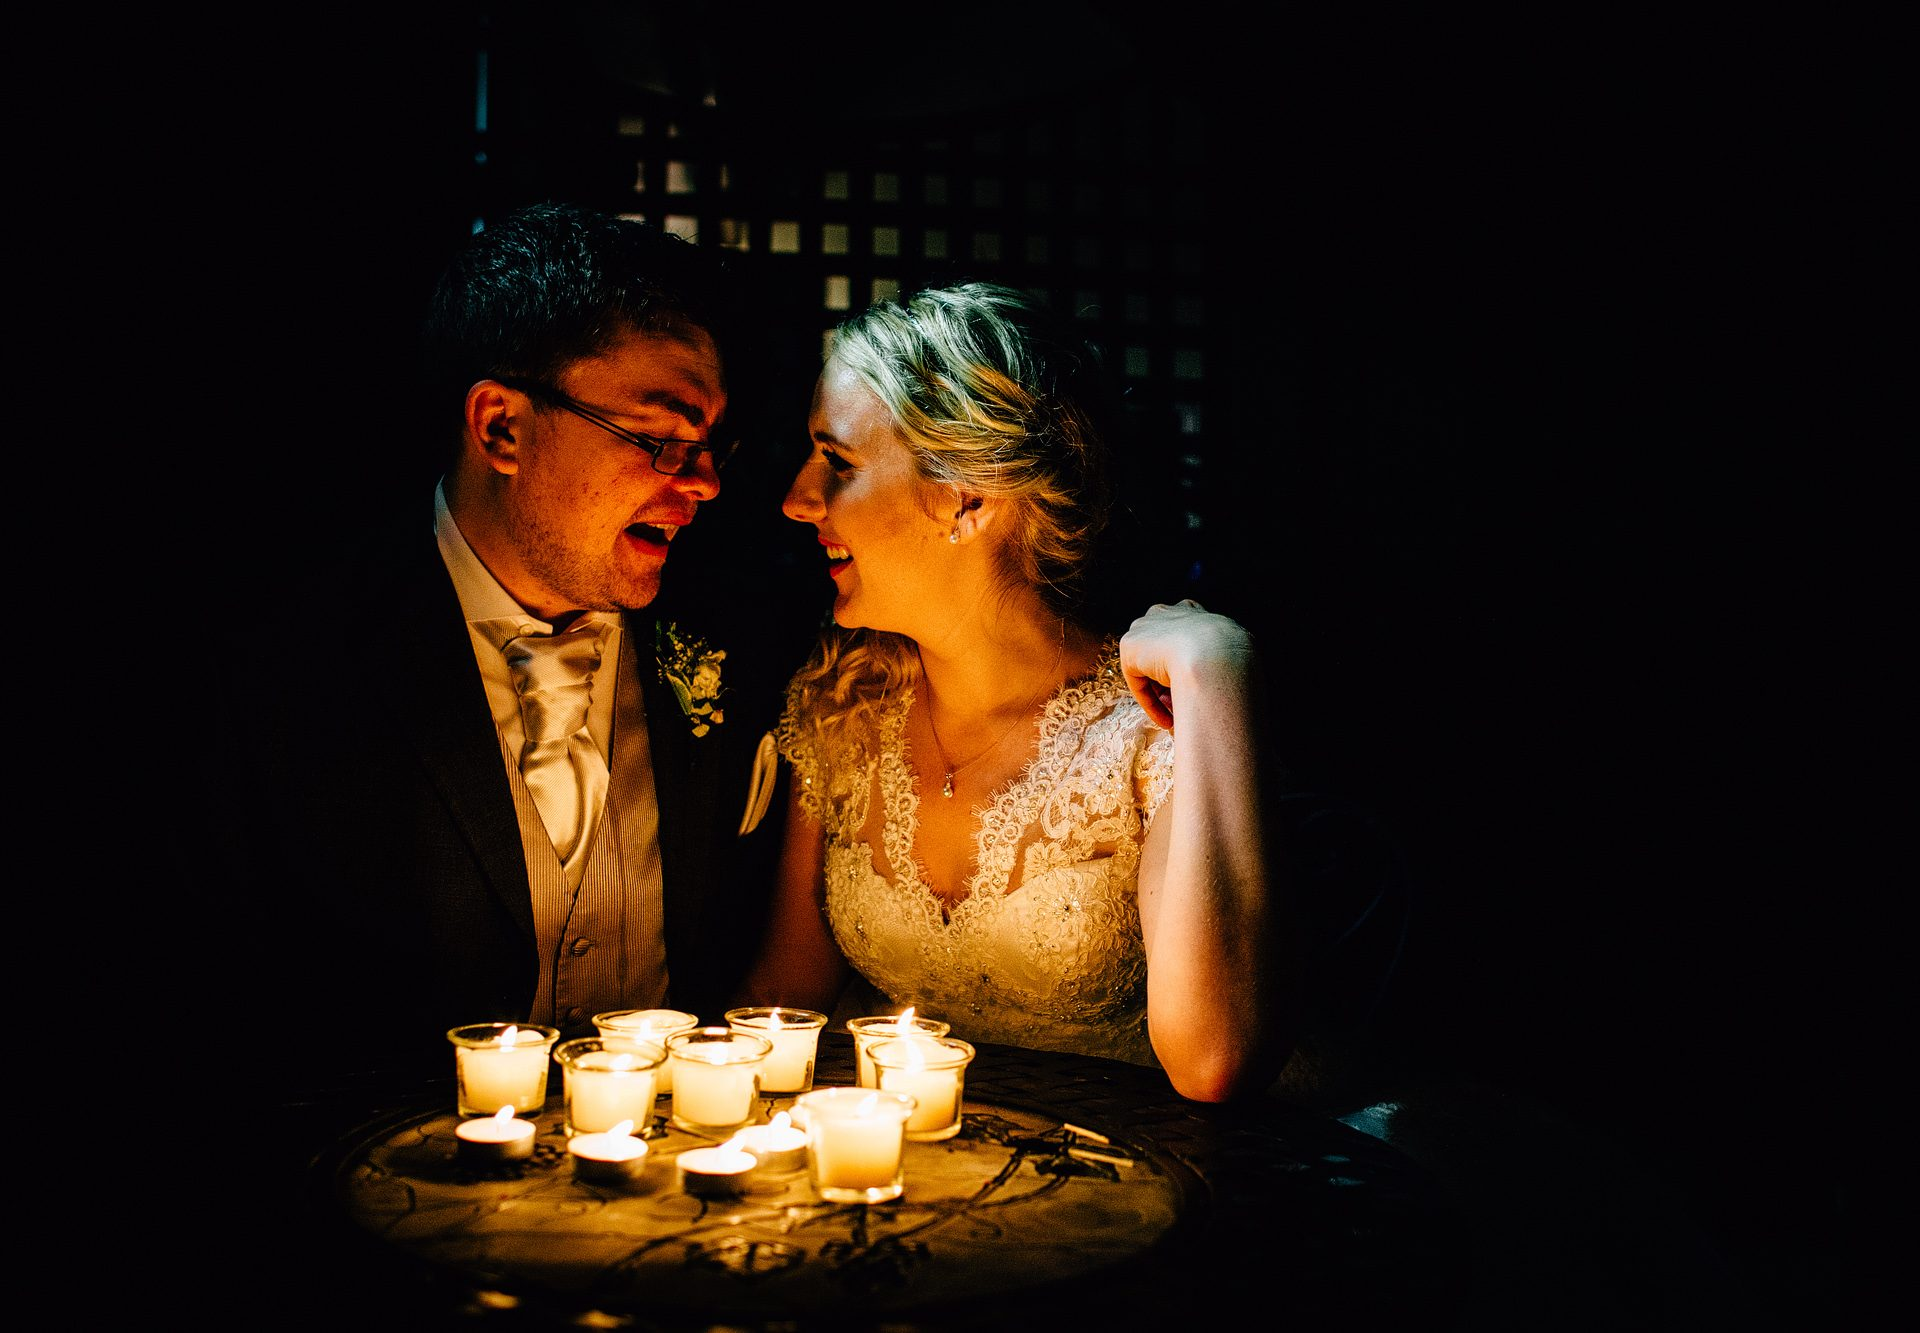 Bride and Groom lit by candlelight